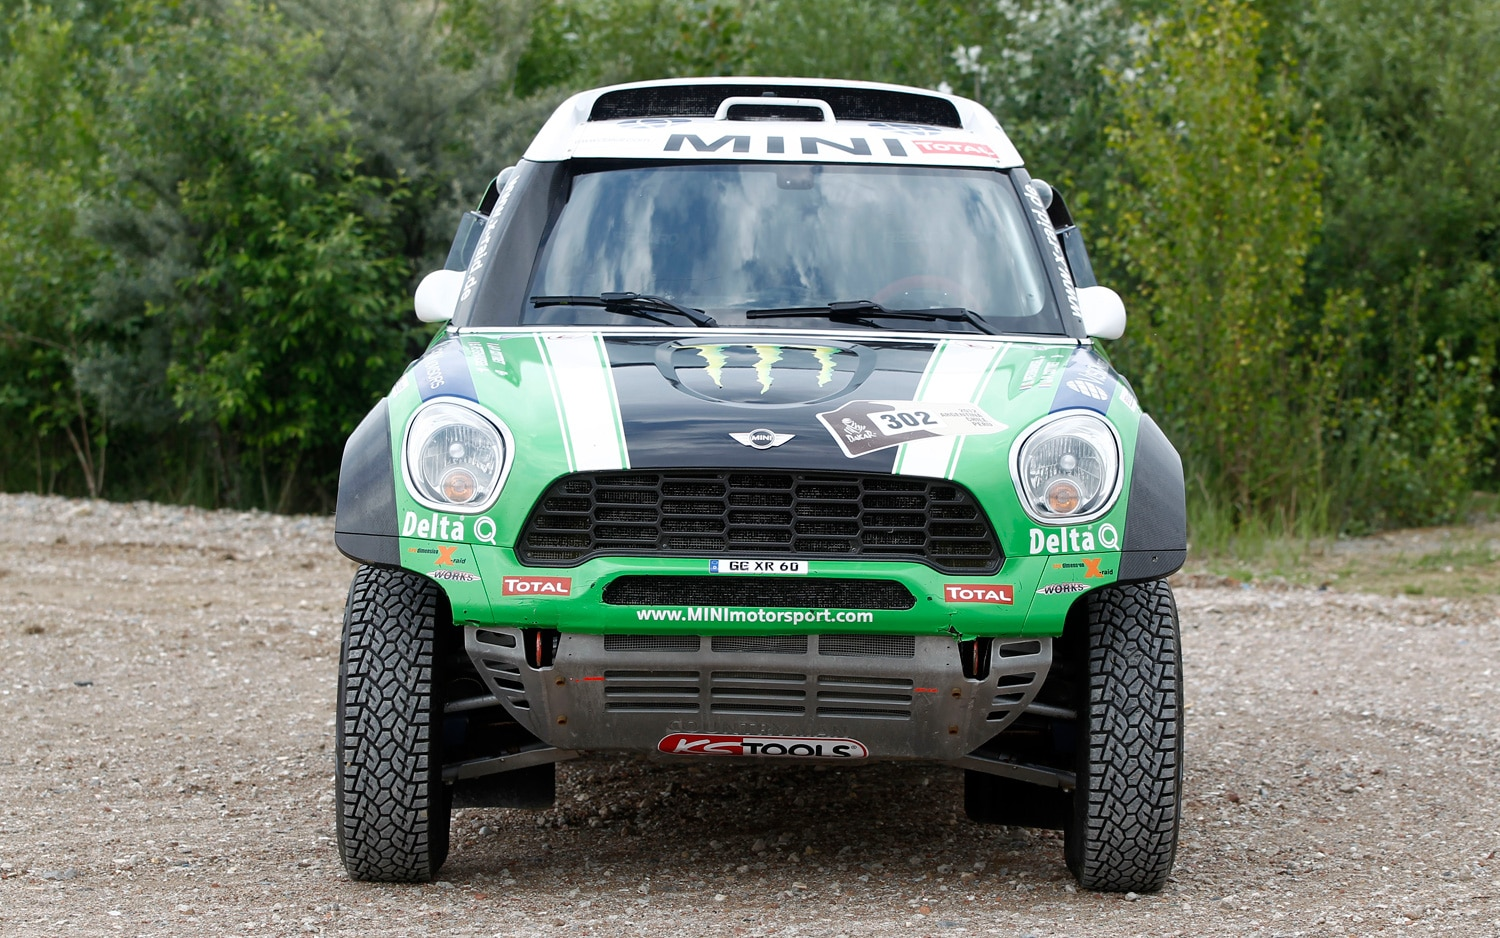 2013 Mini Countryman S ALL4 John Copper Works Monster Energy Dakar Rally Vehicles Image 3